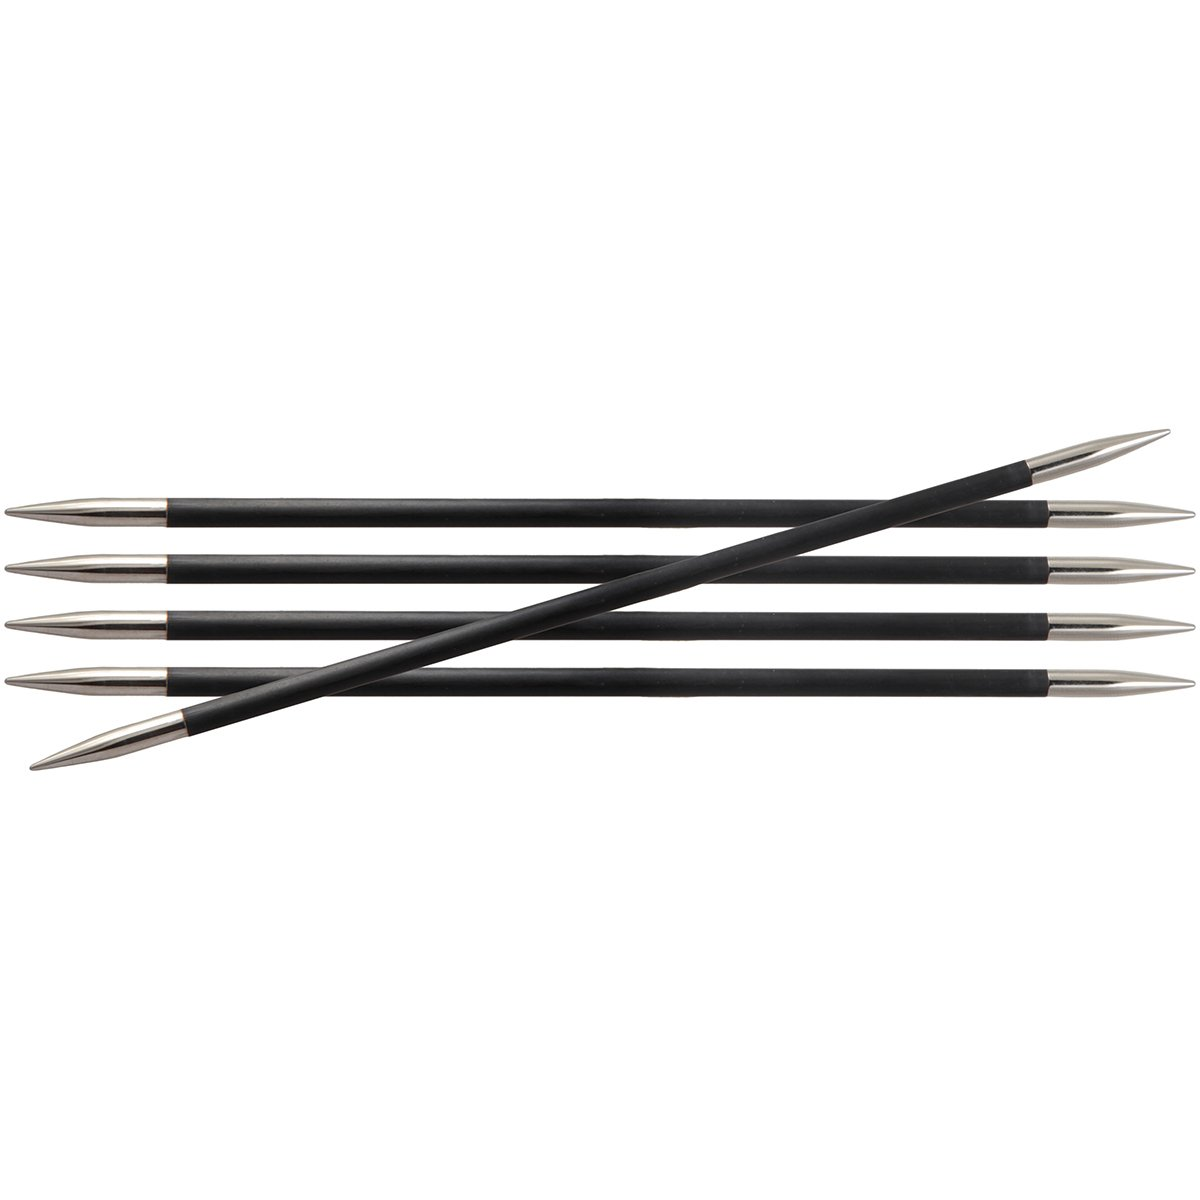 Knitter's Pride 9/5.5mm Karbonz Double Pointed Needles, 8 by Knitter's Pride B00H016P6A